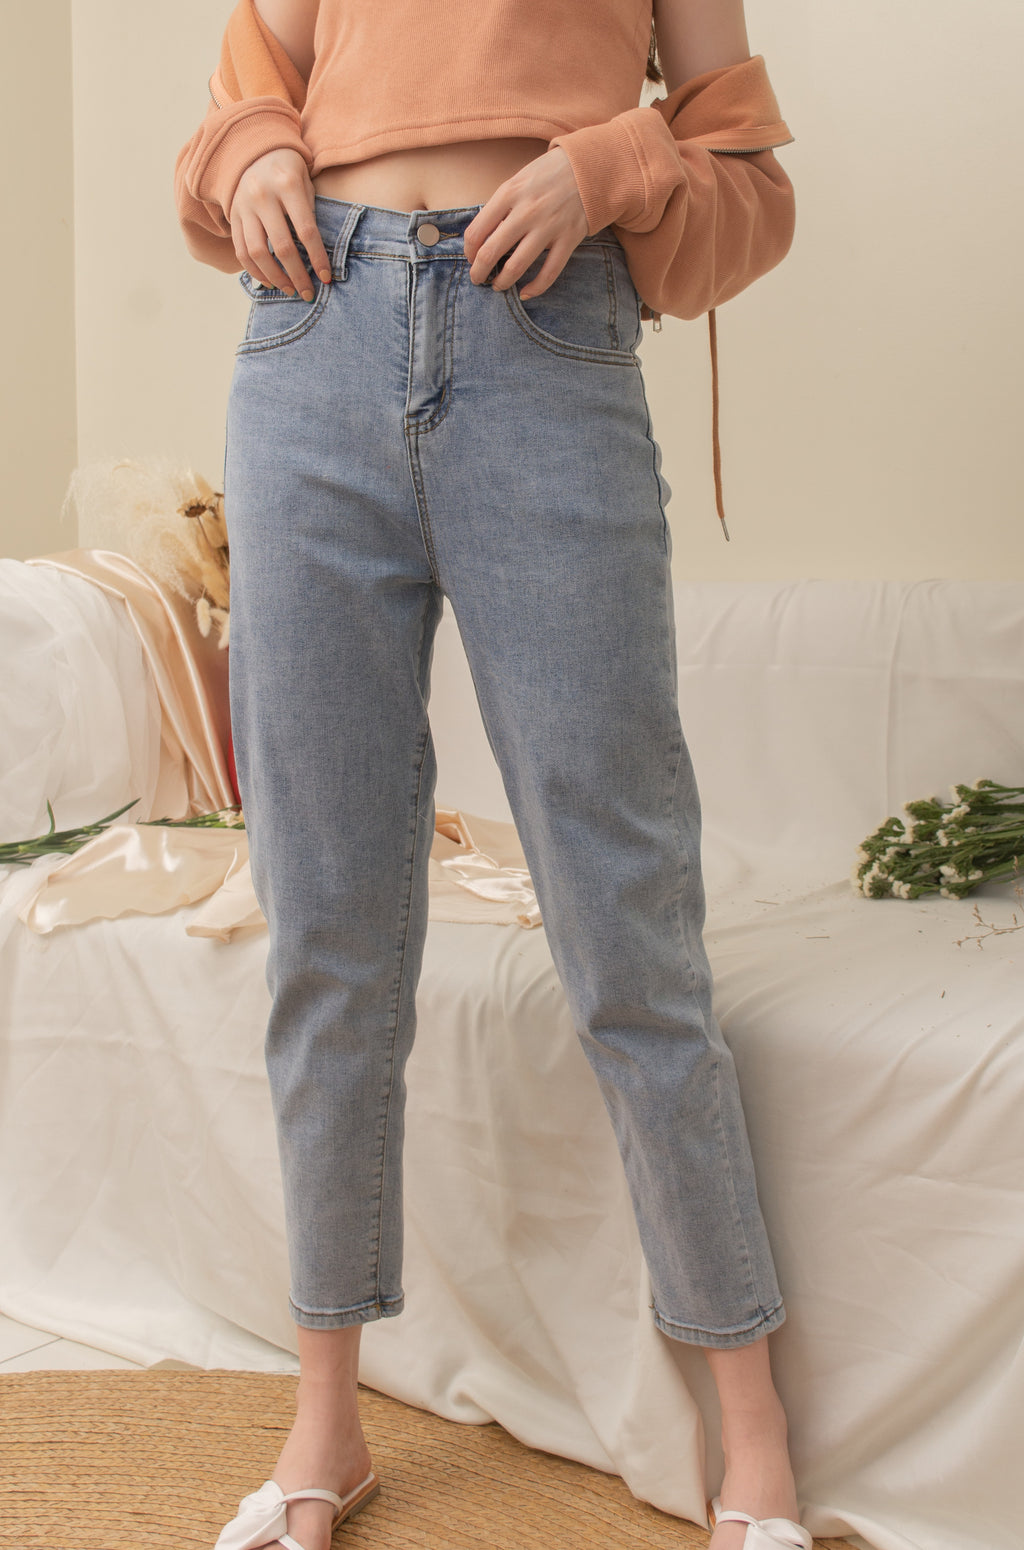 COOKIE Denim Jeans - Medium Wash